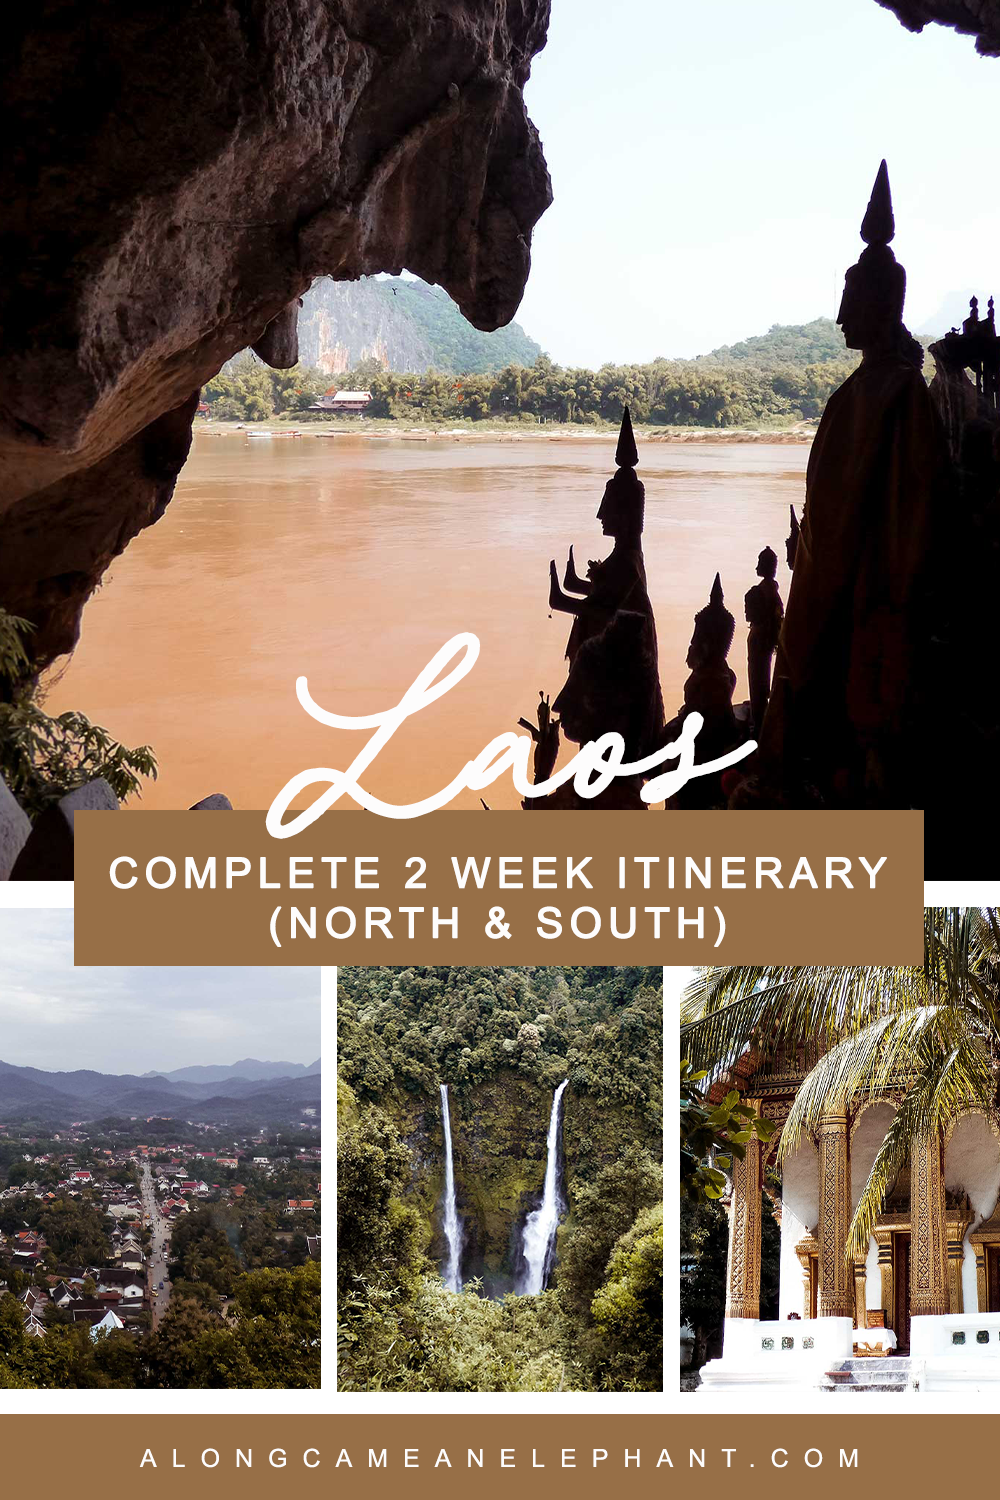 This Laos itinerary shows you all the Laos highlights: Luang Prabang, Vang Vieng, Vientiane, the Bolaven Plateau and the 4000 isles. This Laos travel guide shows you how to visit Laos in 2 weeks.  #laos #laositinerary #laostravel #2weekslaos